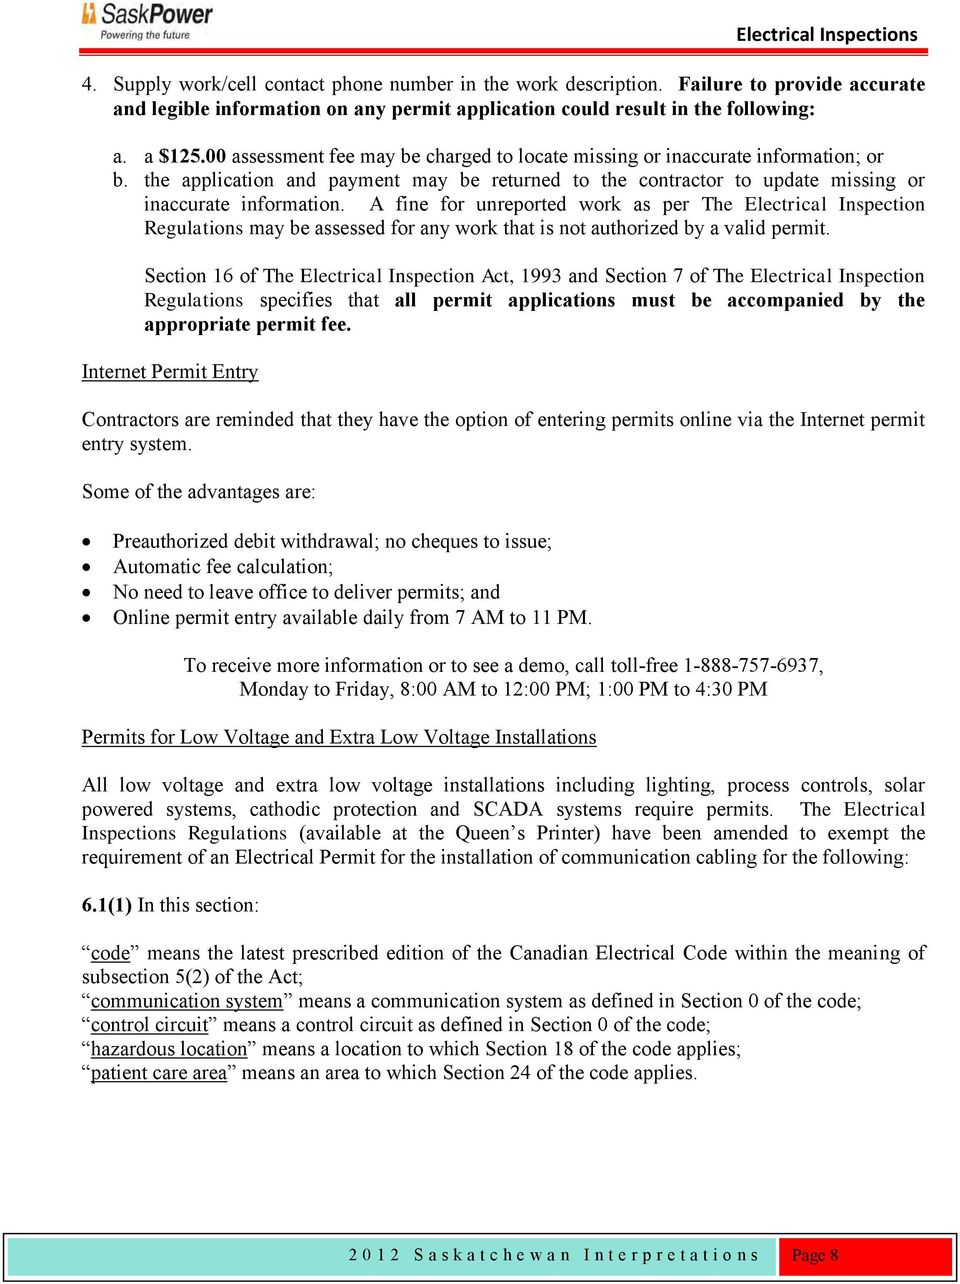 Saskatchewan Interpretations Pdf Of A Low Voltage Lighting System Explained By An Ontario Electrician Fine For Unreported Work As Per The Electrical Inspection Regulations May Be Assessed Any